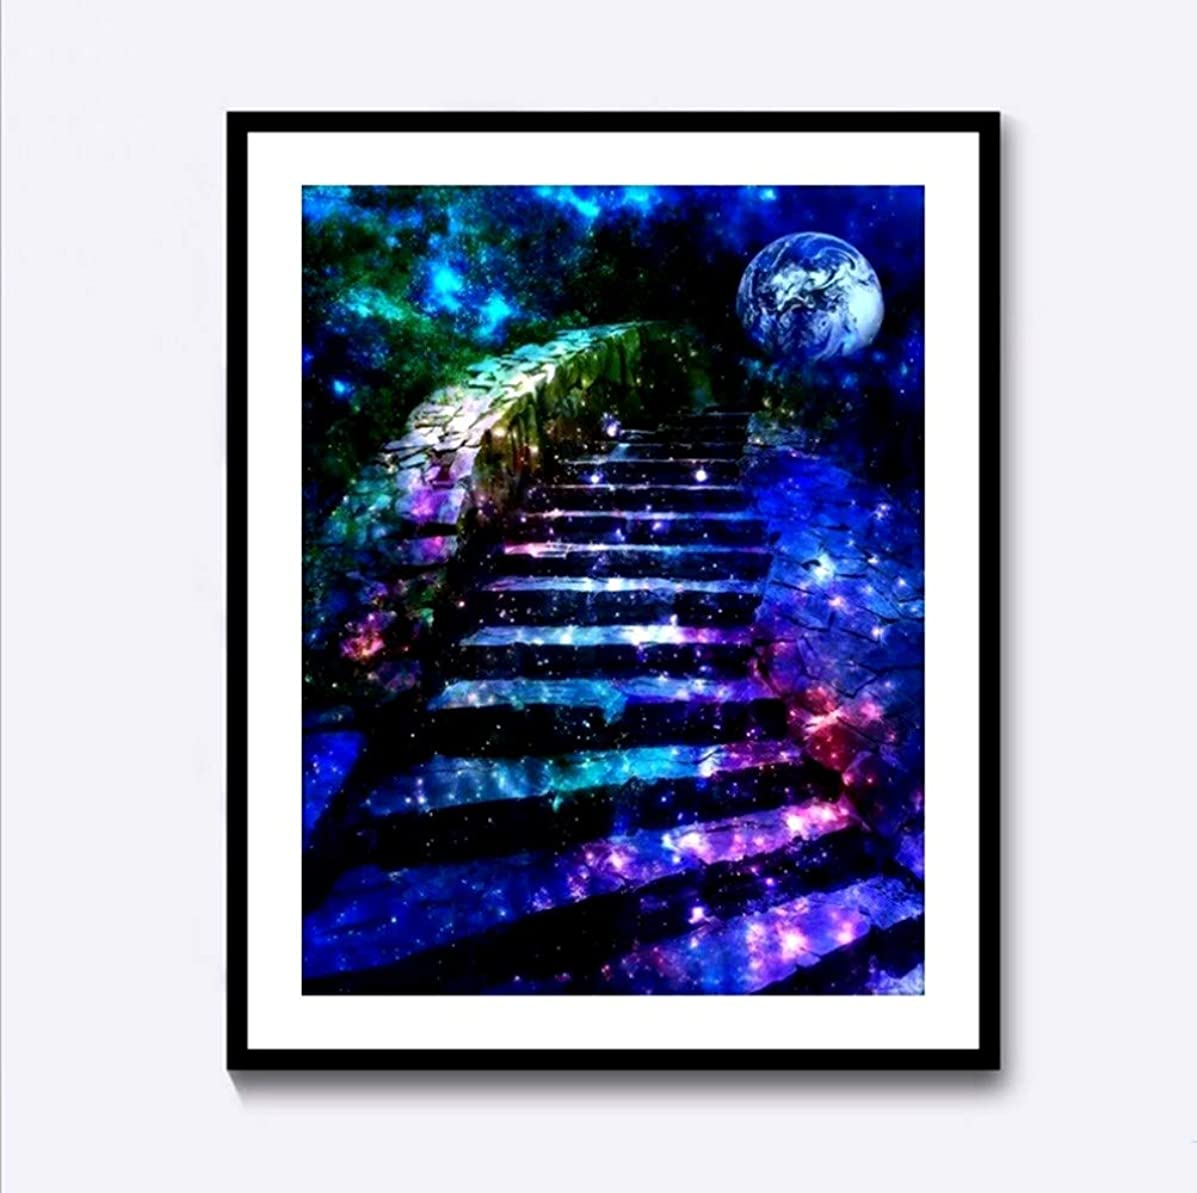 Full Drill 5D DIY Diamond Painting by Number Kits,Rhinestone Cross Stitch Arts Craft Supply for Home Wall Decor Stairway to Starry